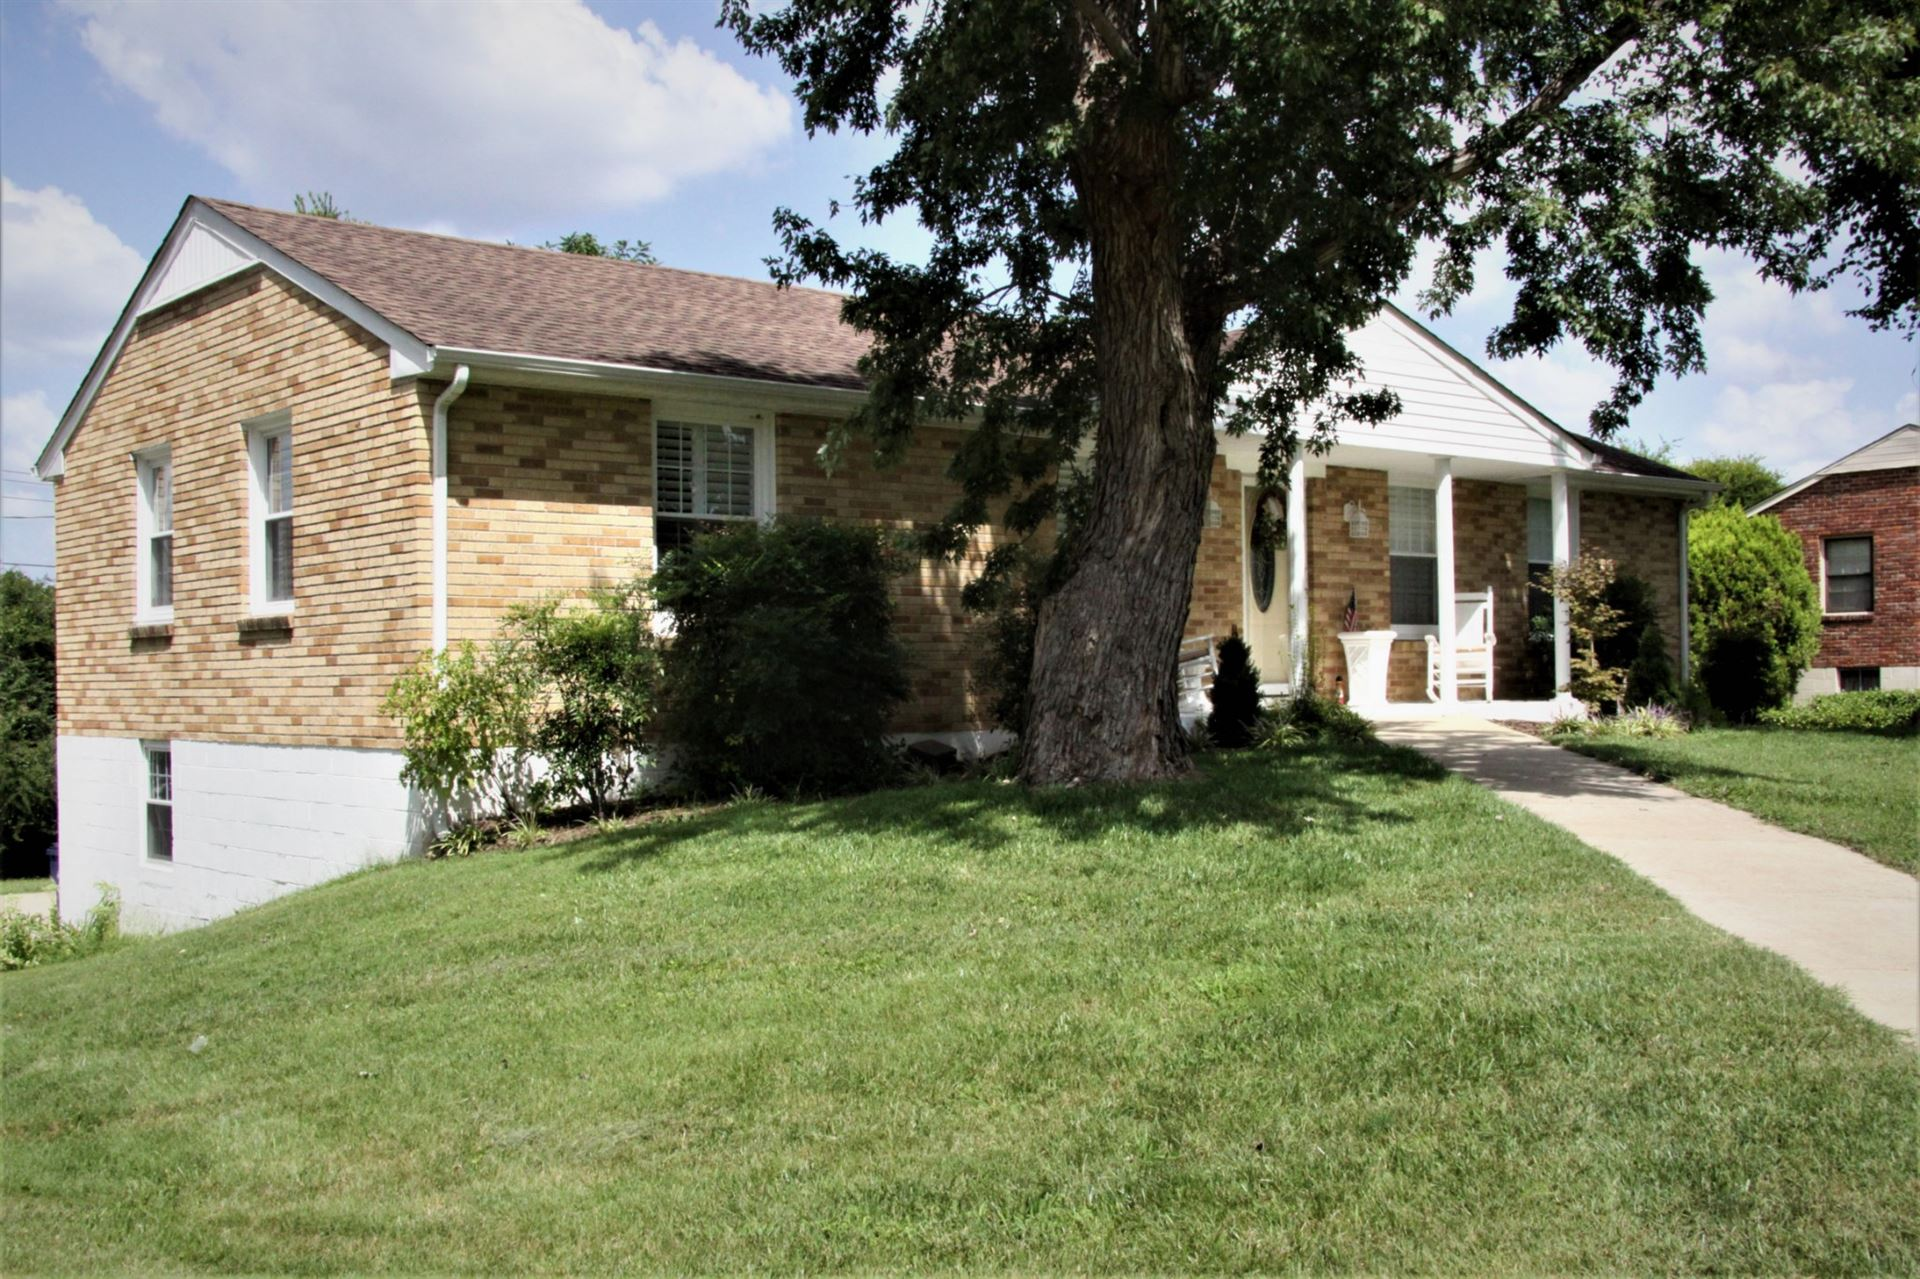 404 Parkview Dr, Columbia, TN 38401 - MLS#: 2286113